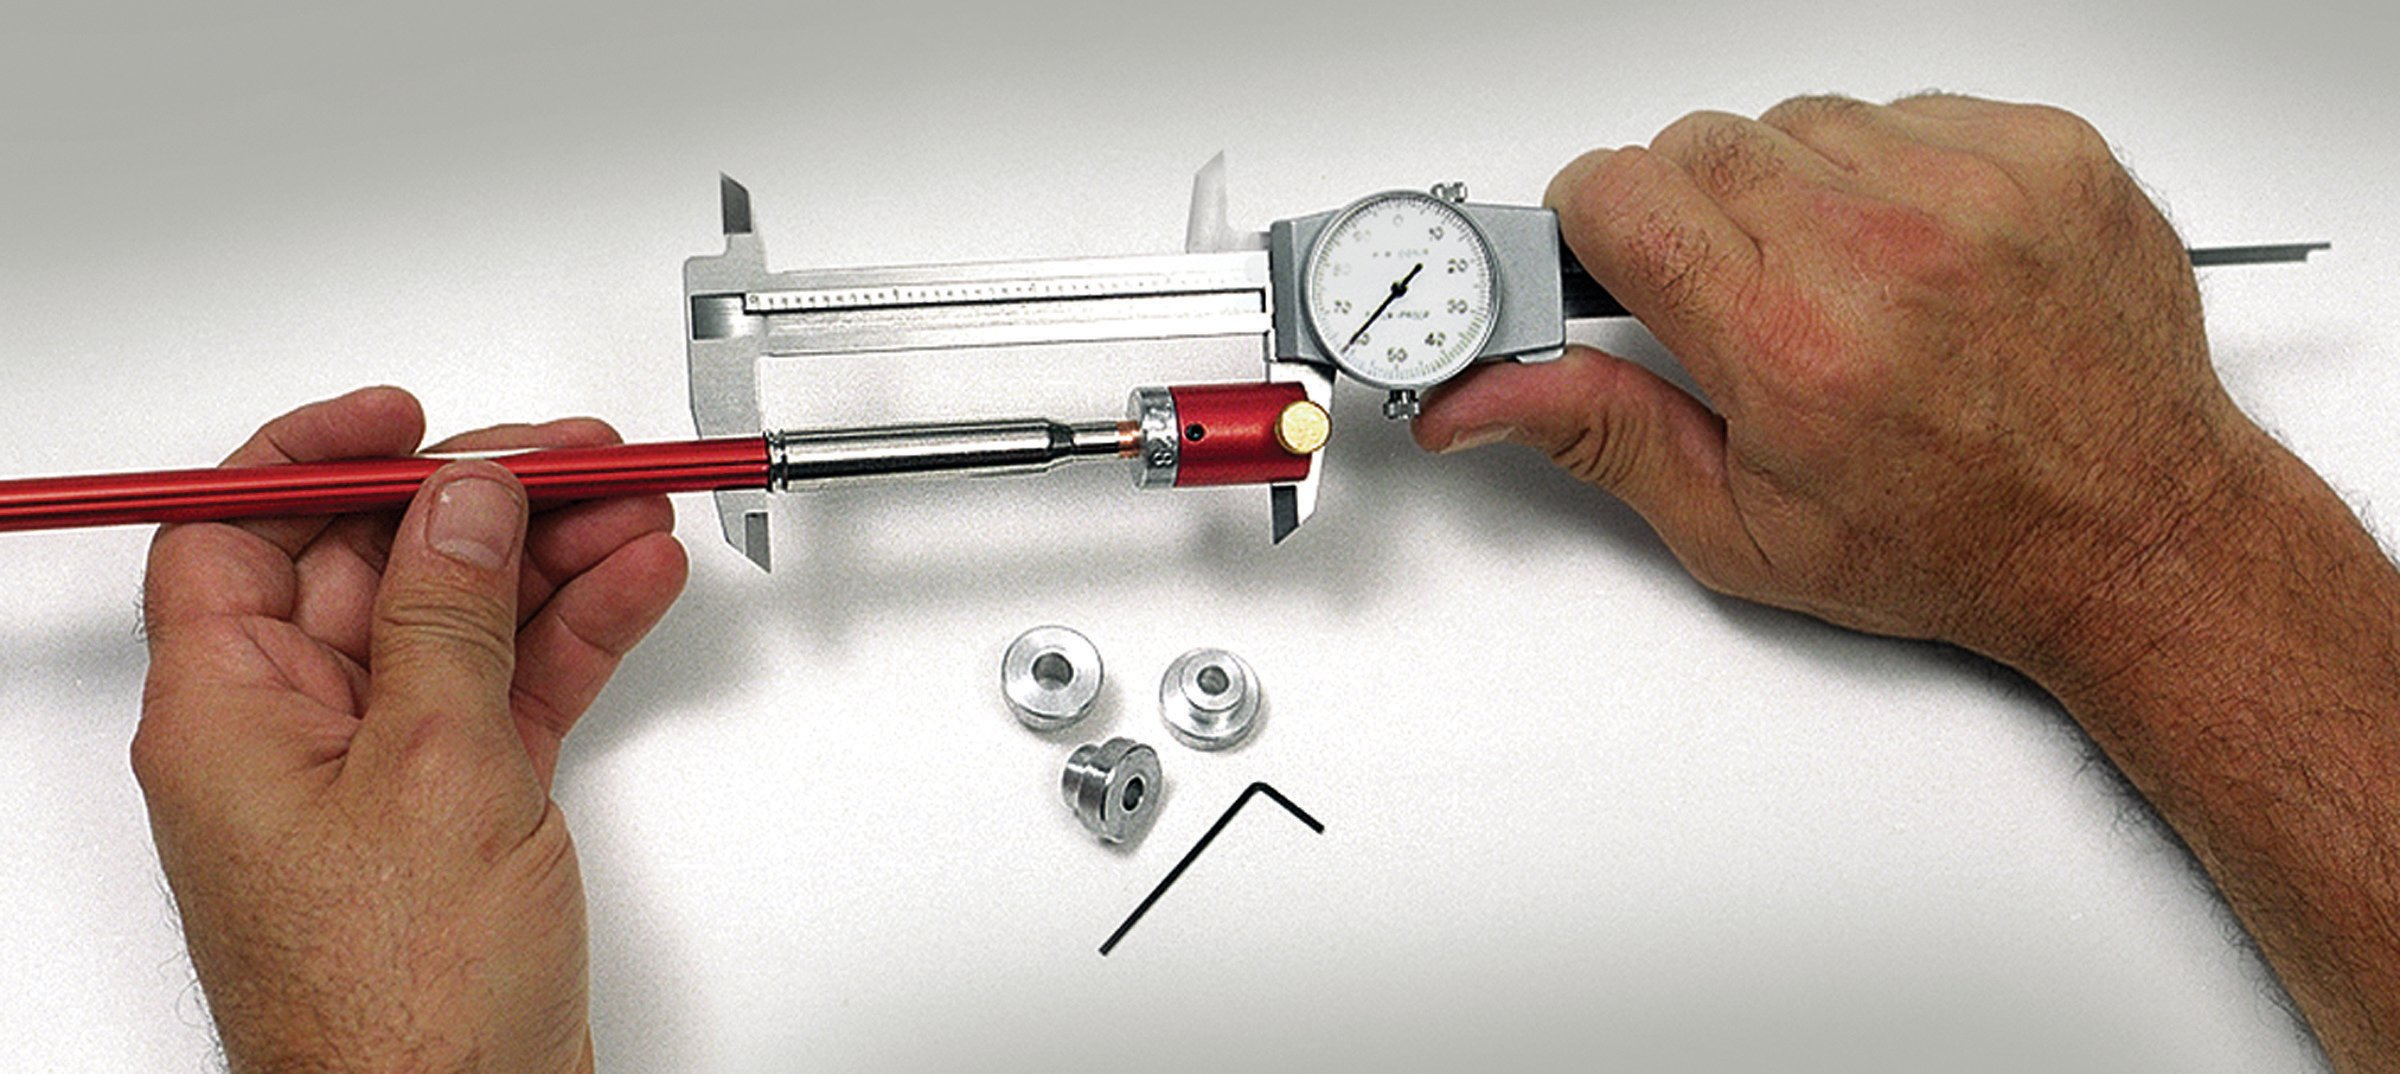 Hornady B14 Lock-N-Load Comparator Body with Set of 14 Inserts